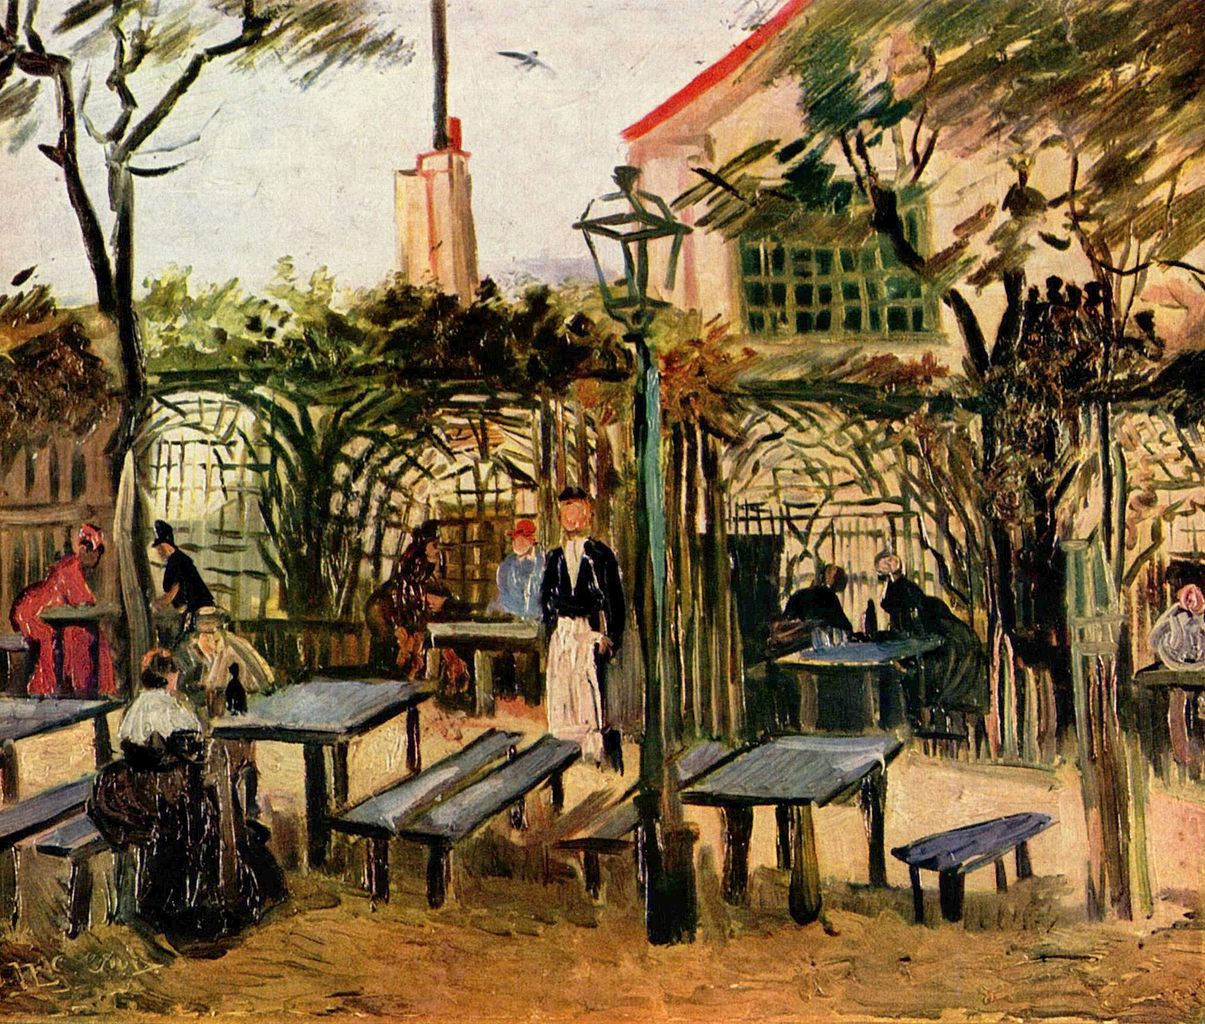 La Guinguette, an outdoor cafe in Montmartre by Vincent van Gogh, 1886